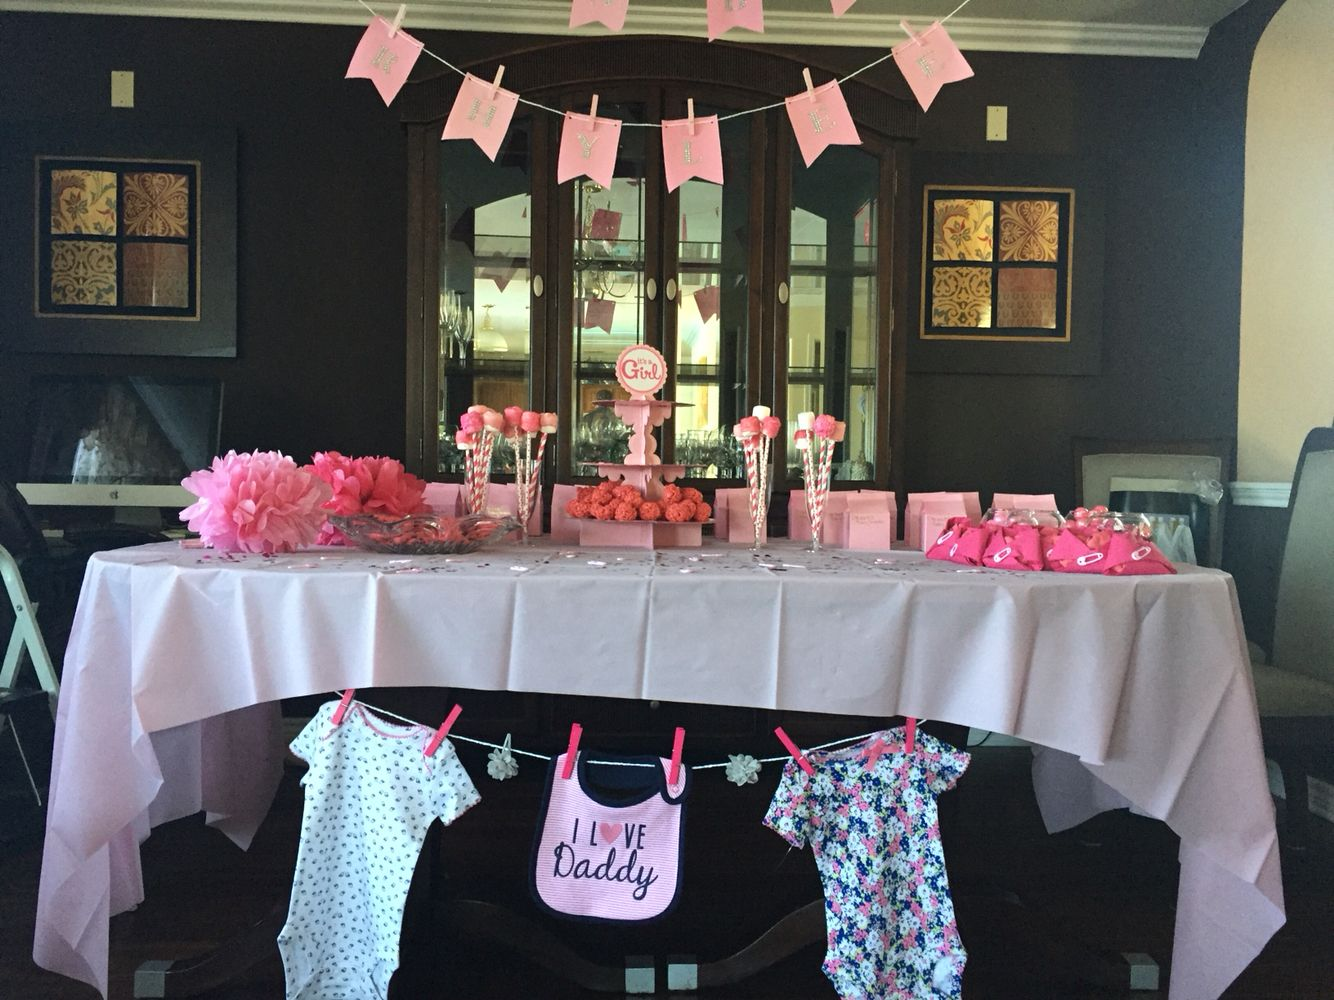 Baby Shower Room Set Up Ideas Baby shower set up ideas banners table set up for baby girl pink themed